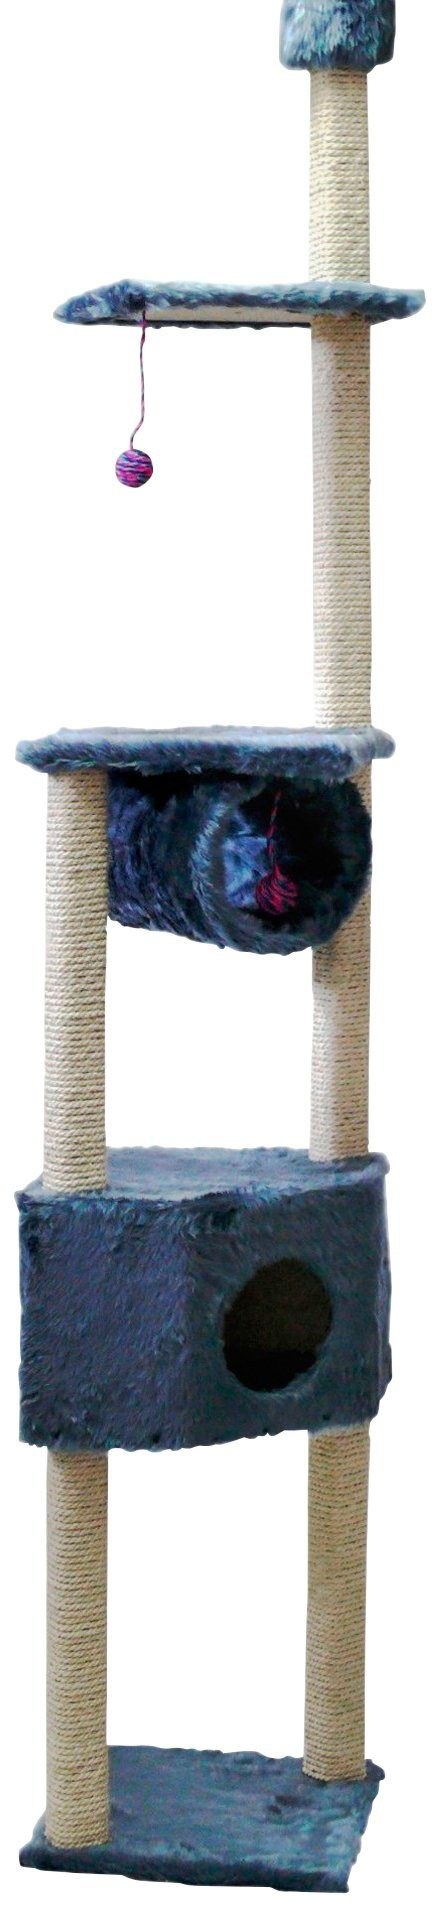 CAT DREAM Kratzbaum-Deckenspanner »Duo«, B/T/H: 40/40/230 cm, blau